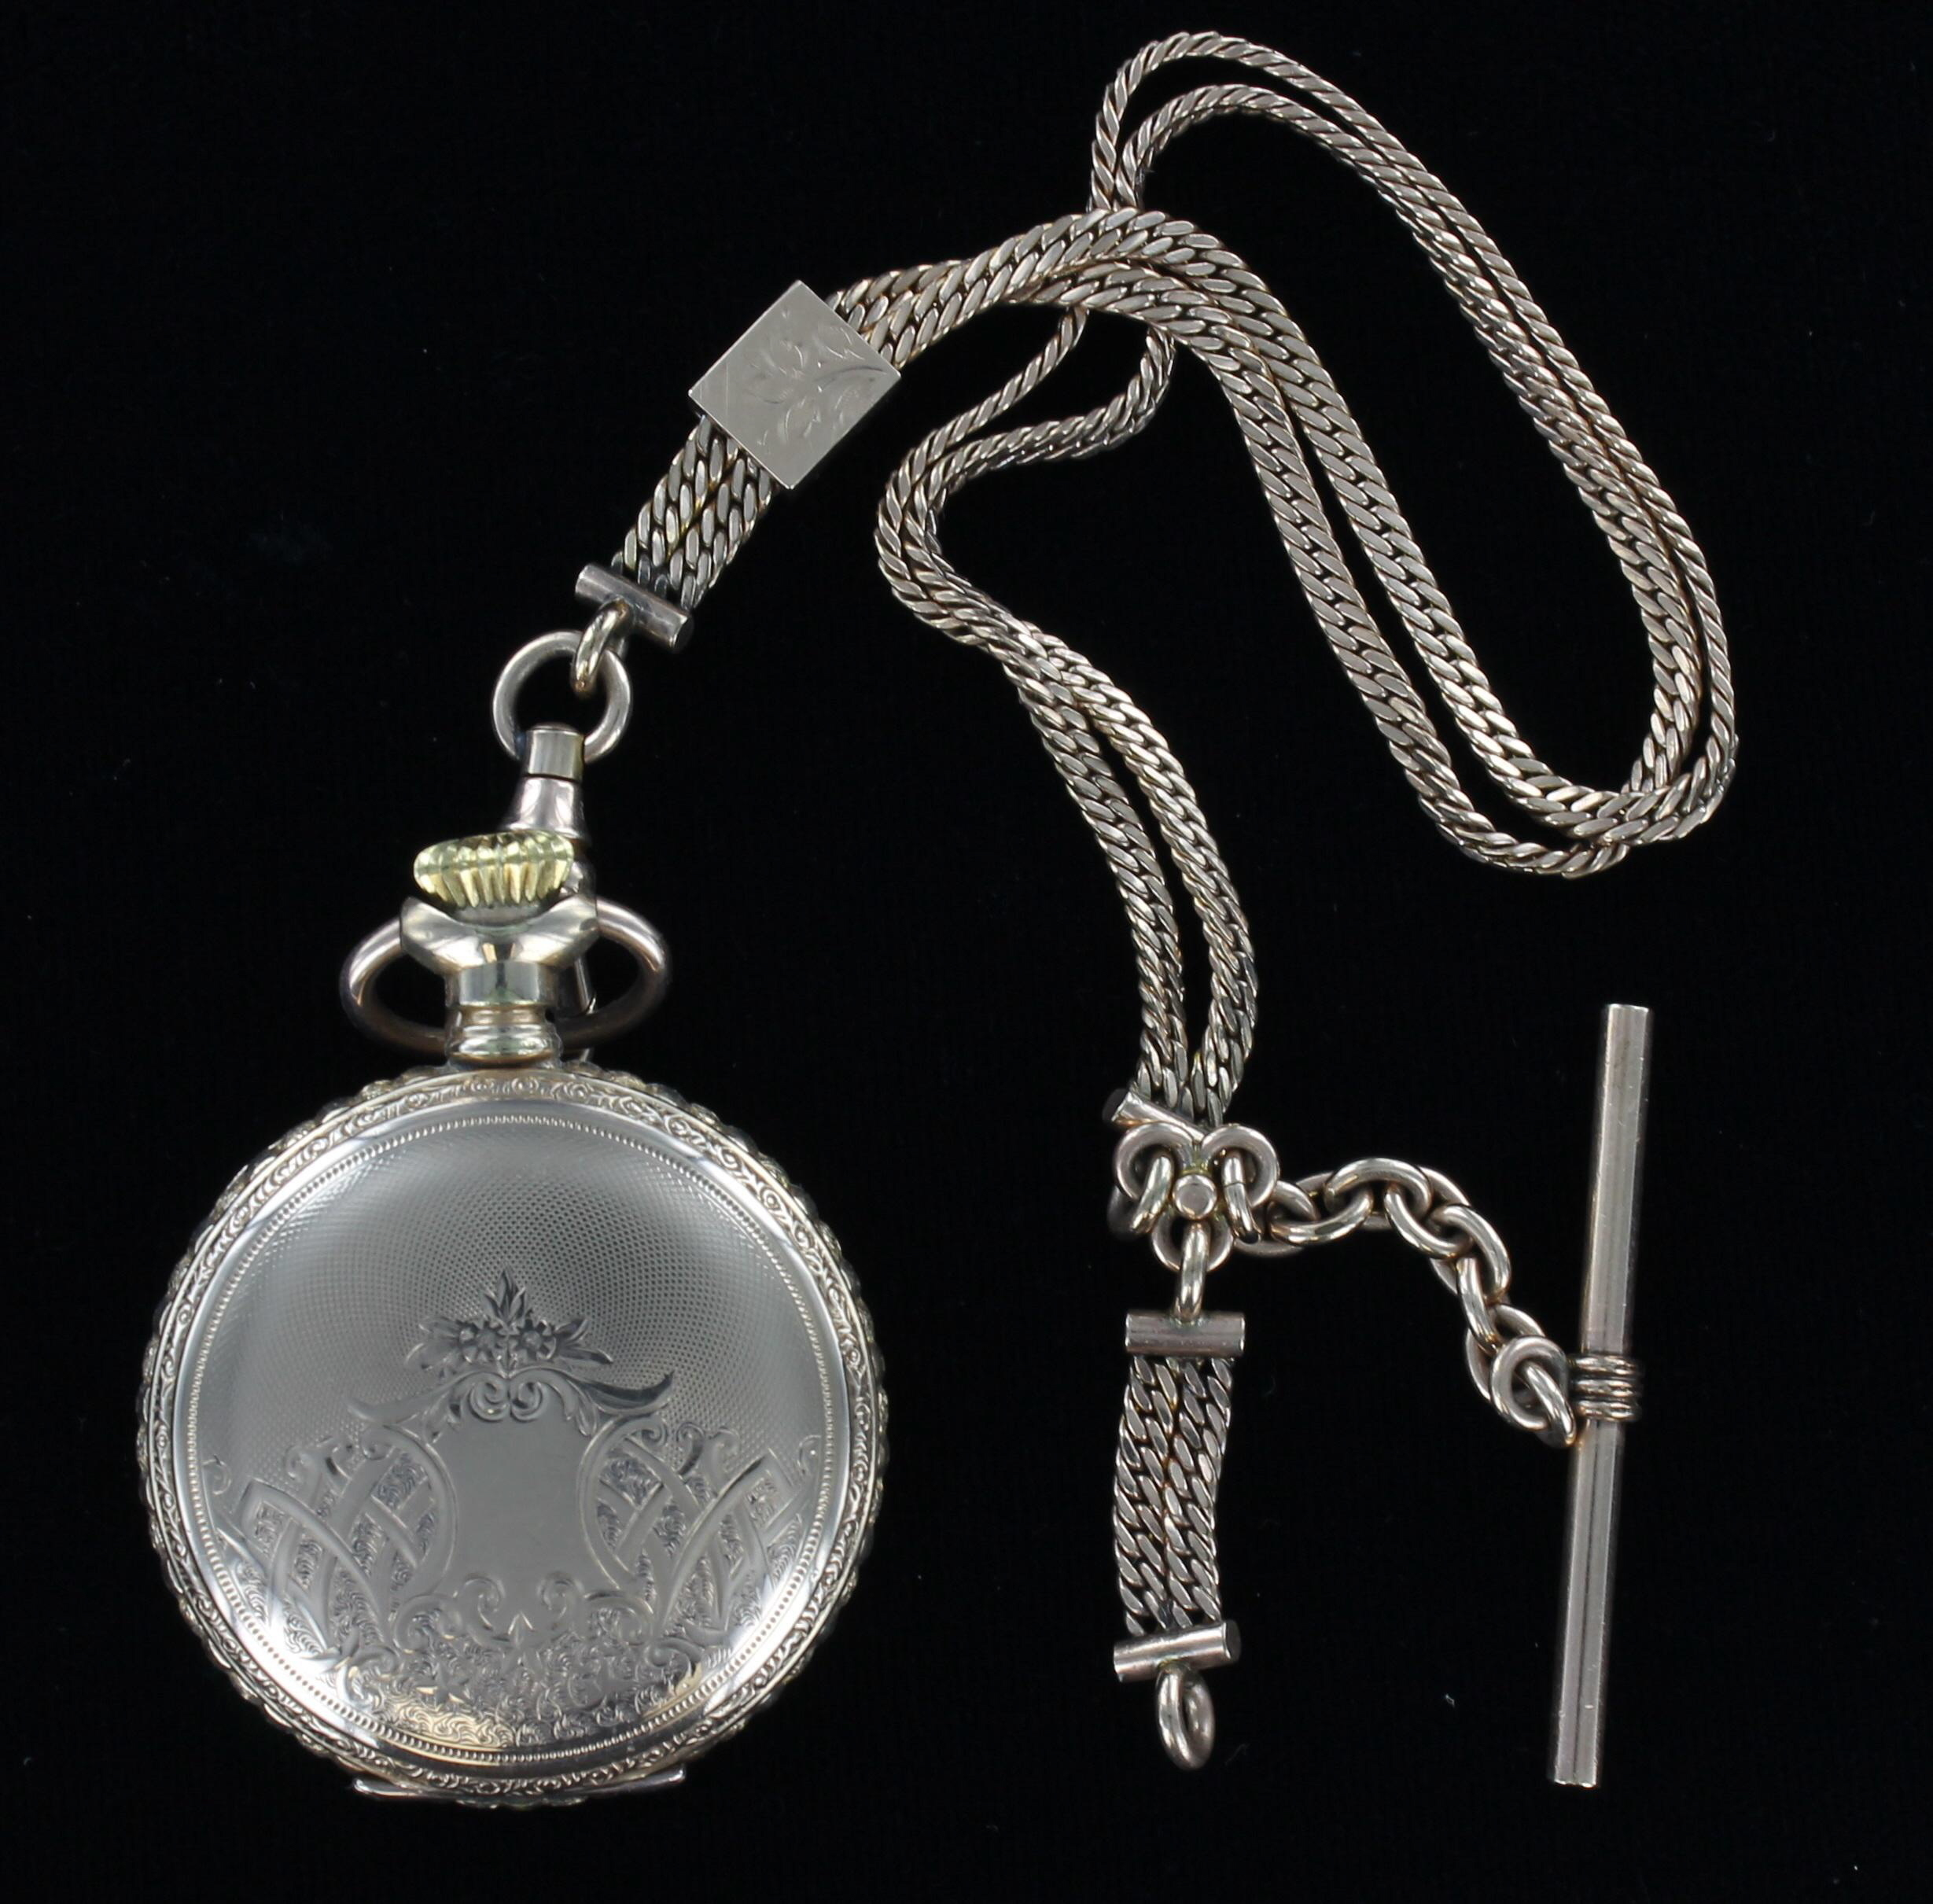 GOLD-FILLED POCKET WATCH AND CHAIN 1930 198-2850